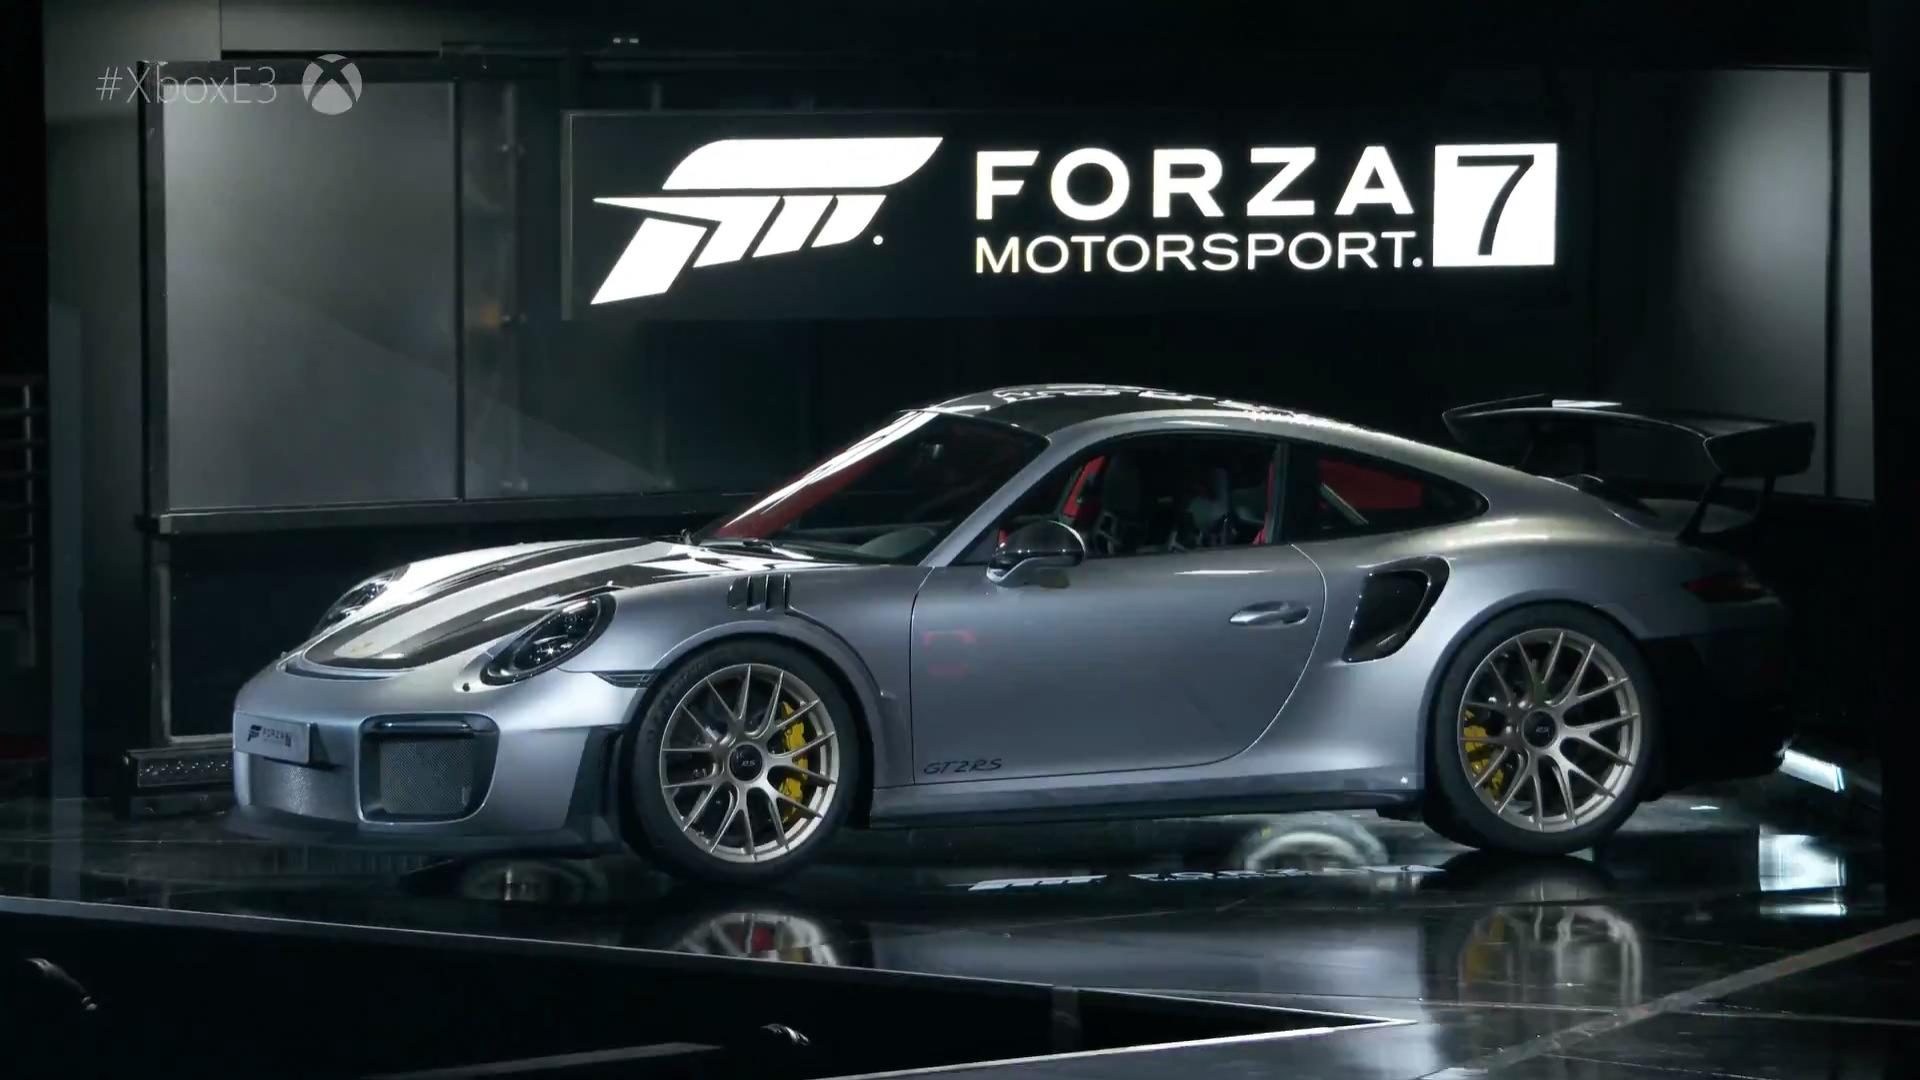 Porsche 911 Gt2 Rs Limited To 1000 Units And Theyre All Gone